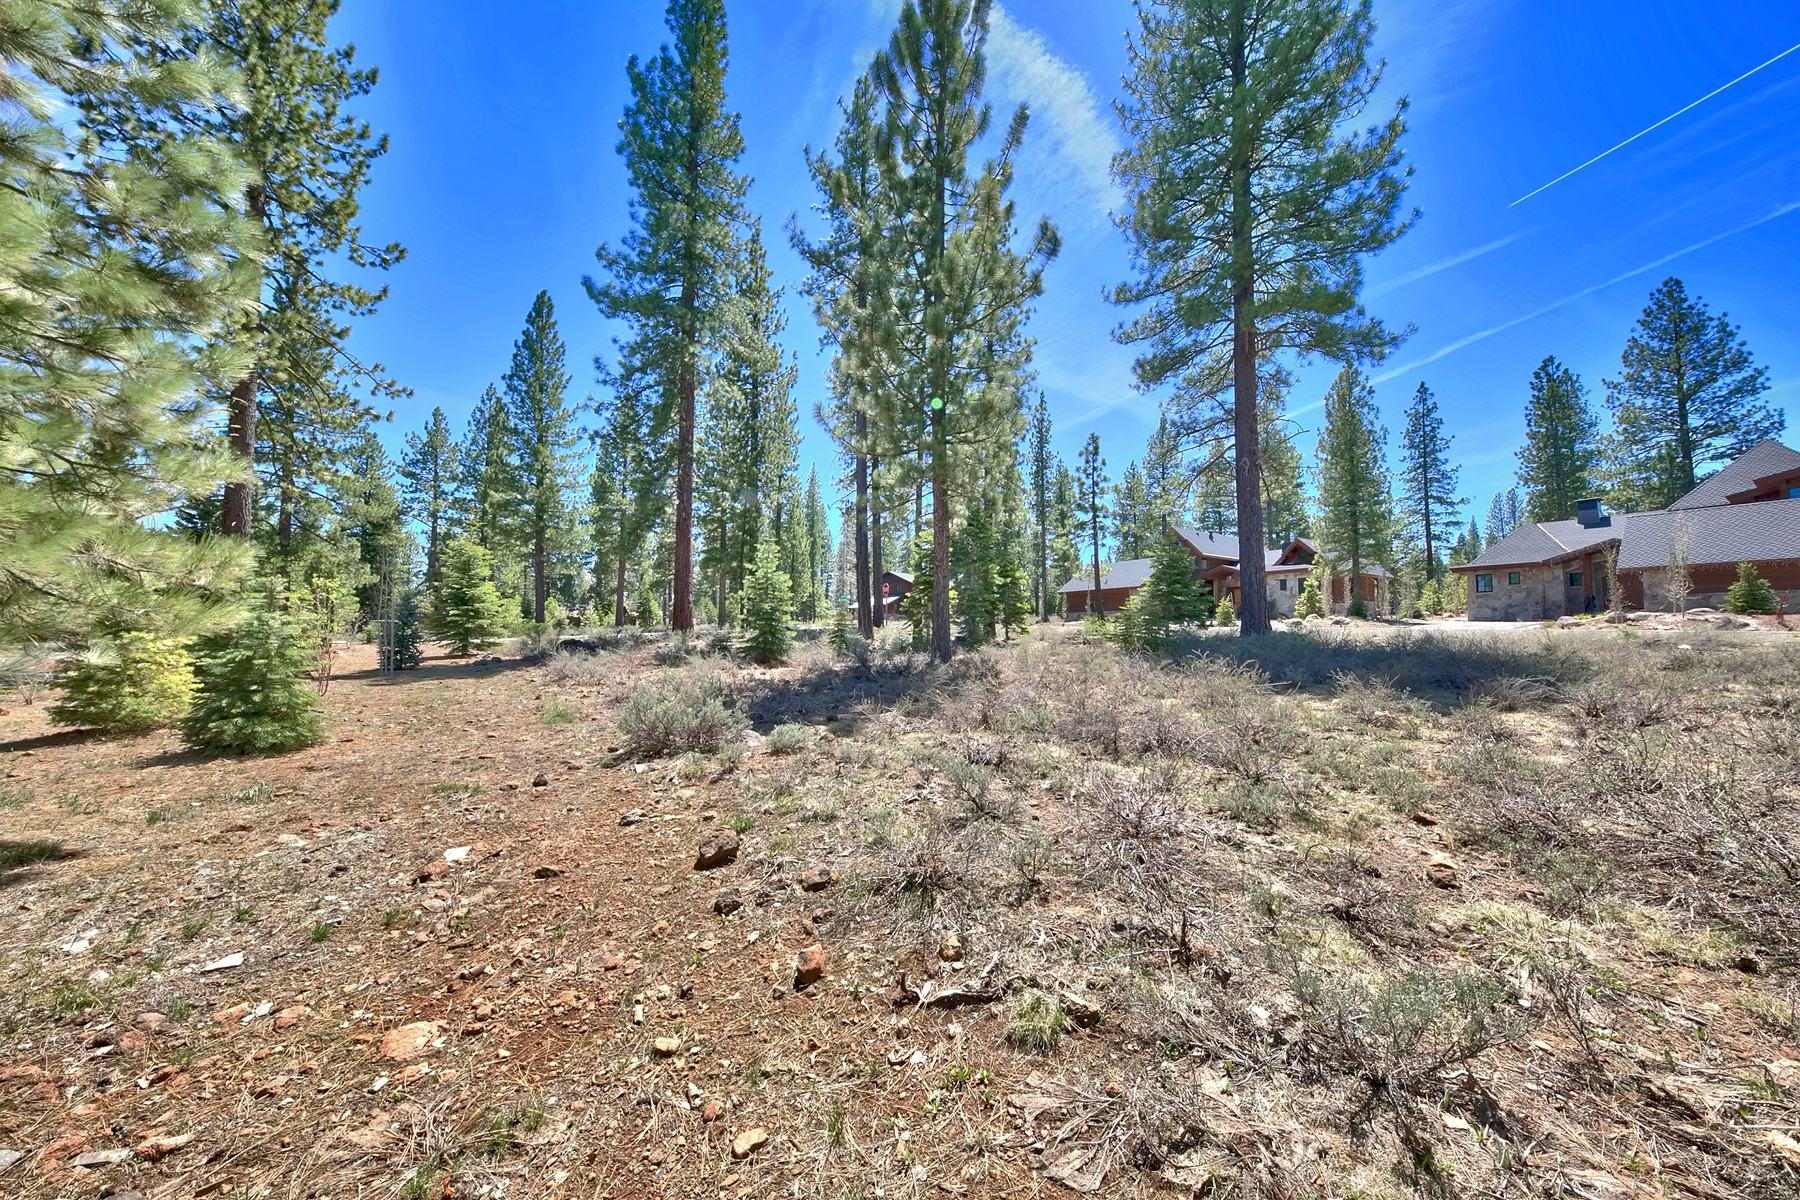 Additional photo for property listing at 10005 Chaparral Court , Lot #36, Truckee, CA 10005 Chaparral Court, Lot #36 Truckee, California 96161 United States